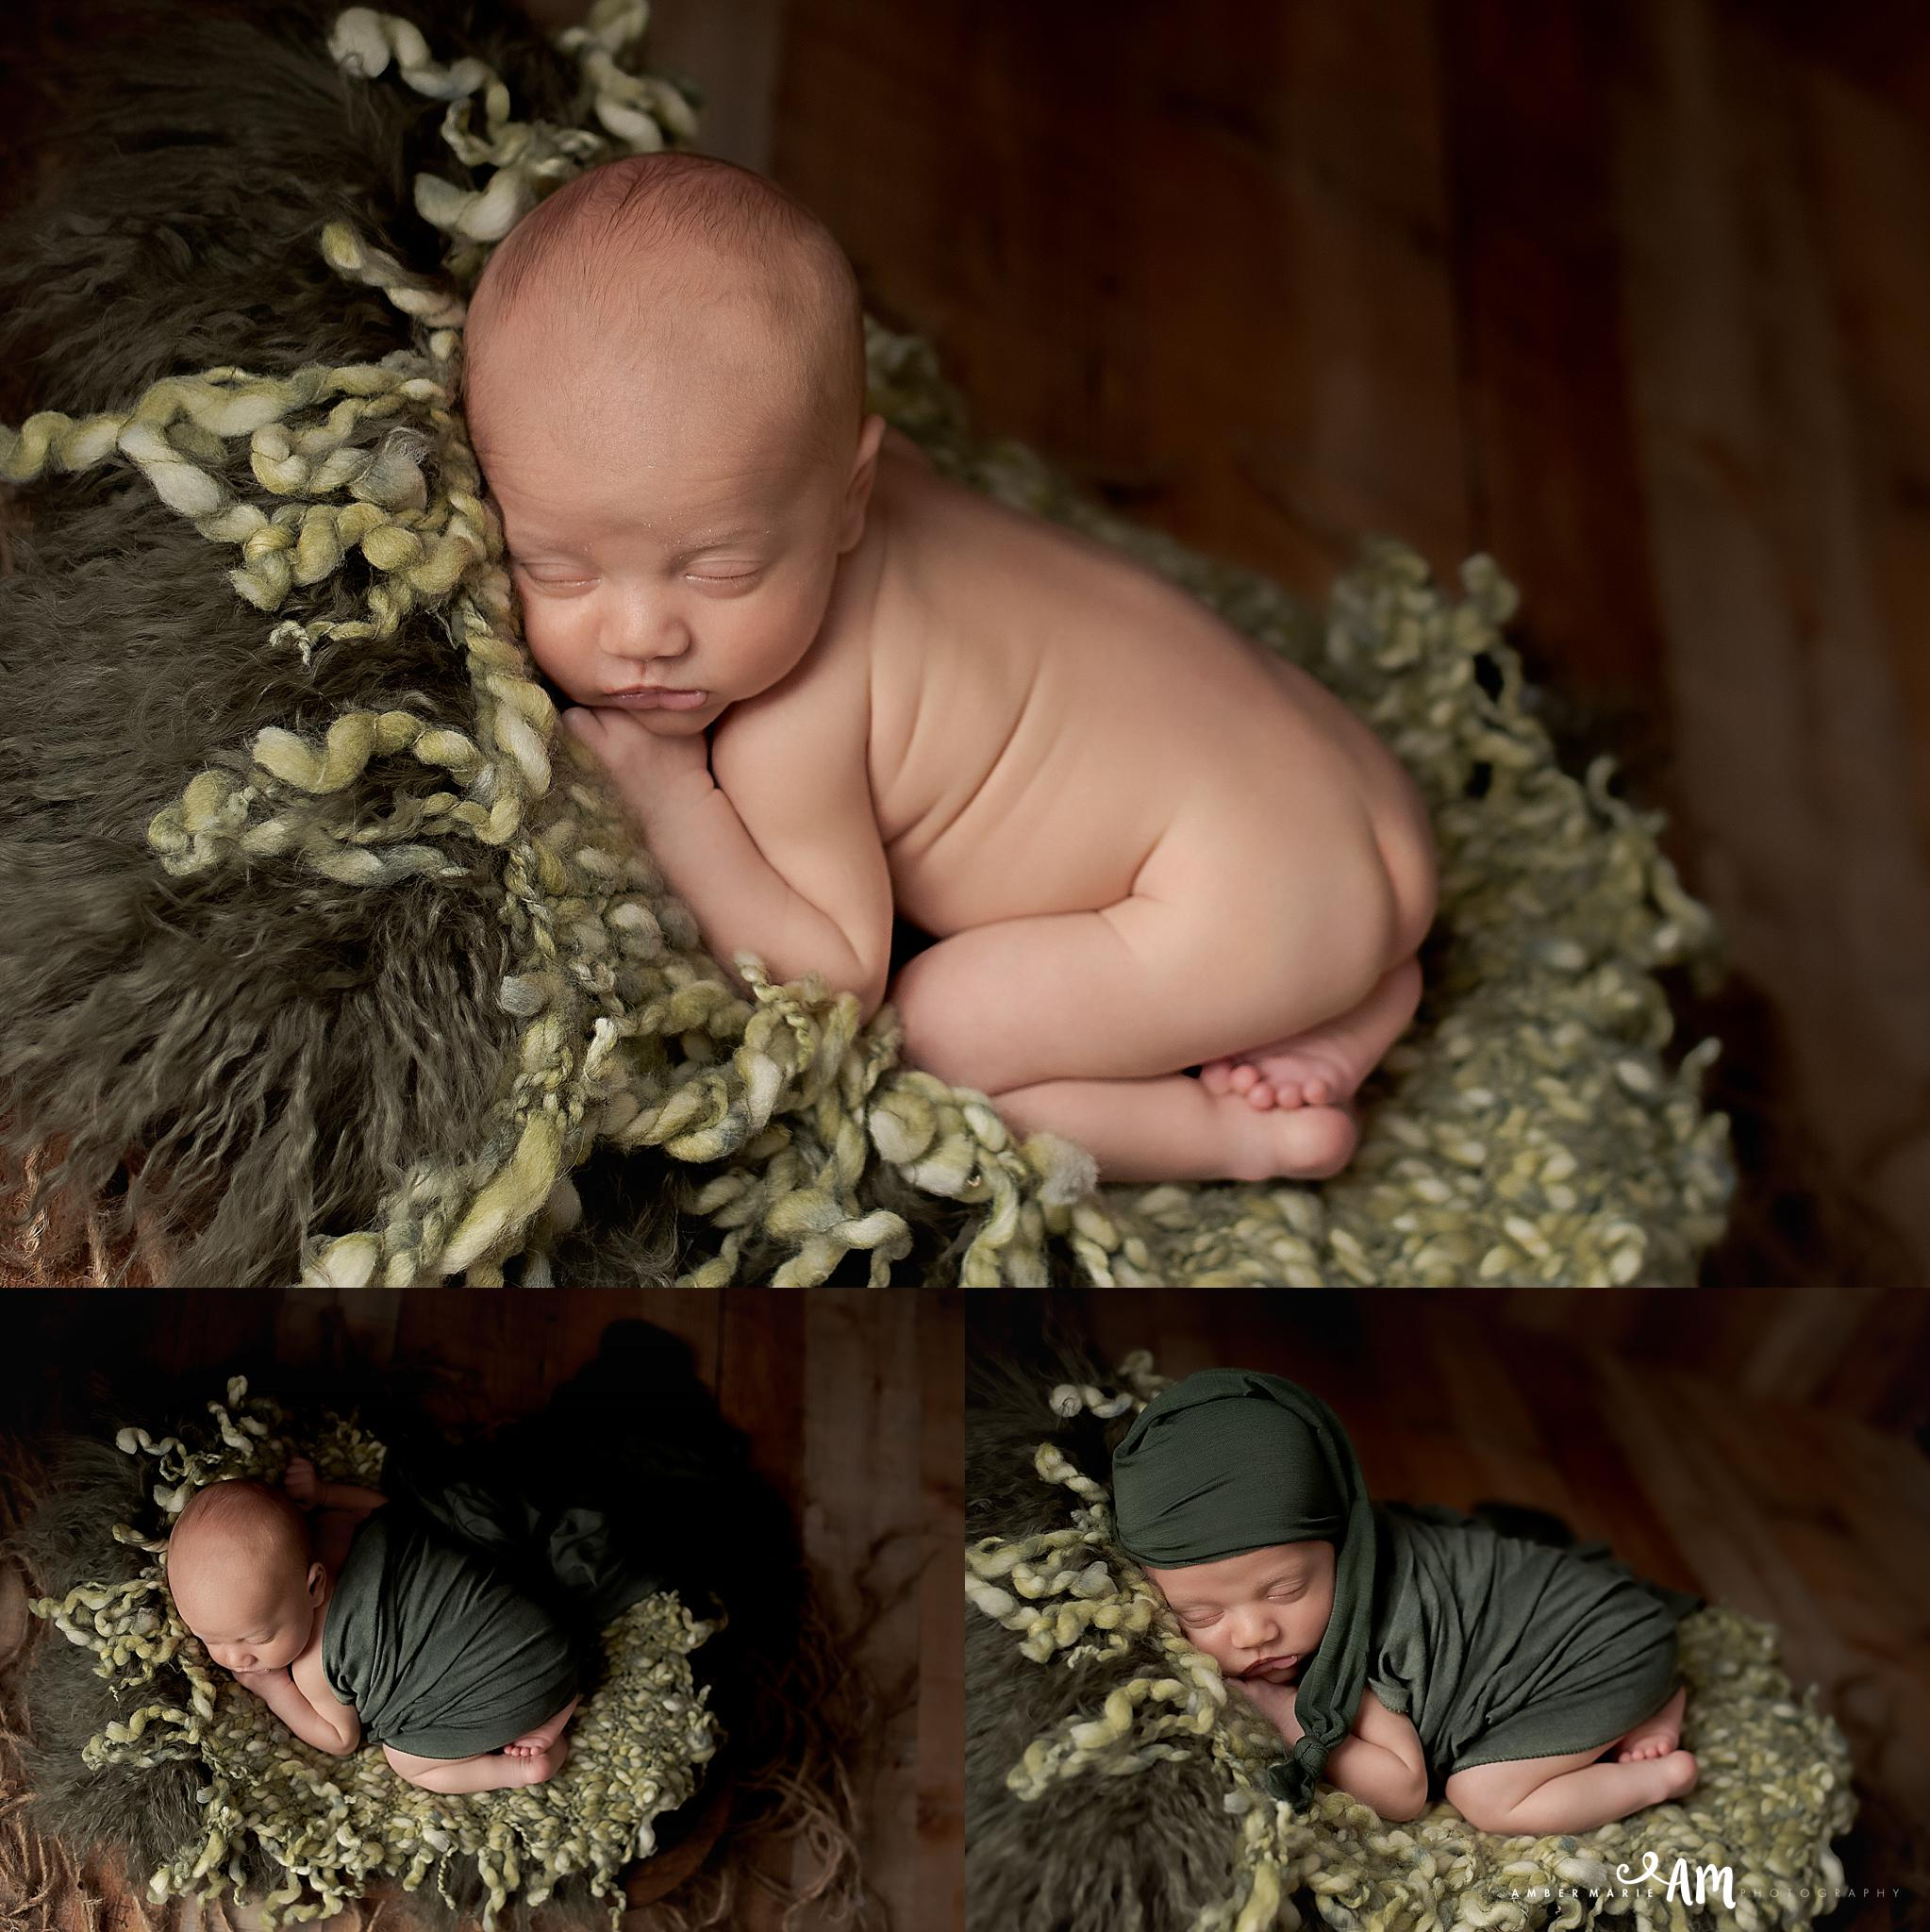 Northfield_Newborn_Photographer07.jpg